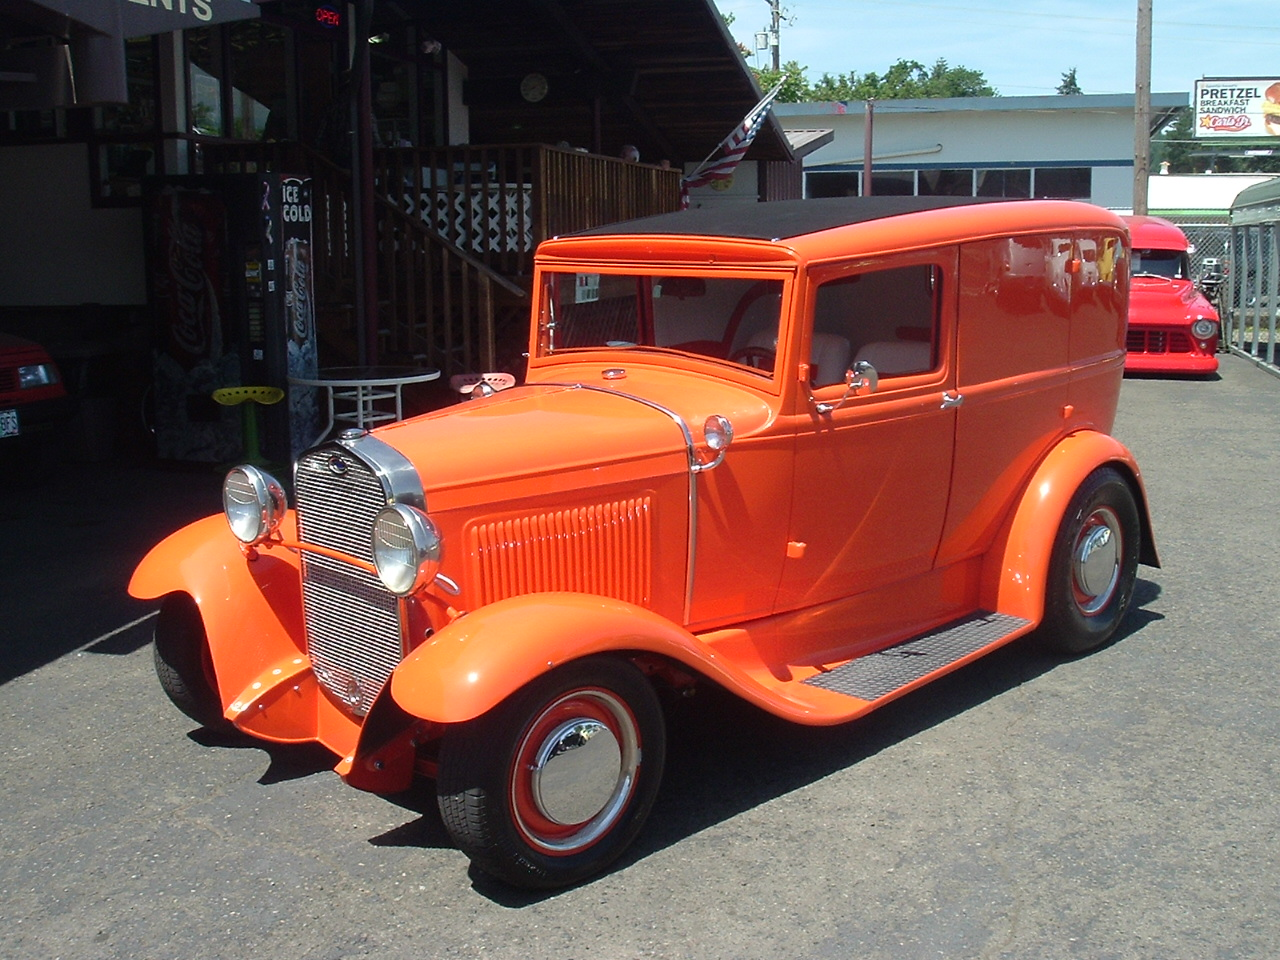 Hamilton Auto Sales Street Rod Fuse Box Under Hood 1931 Ford Model A All Steel Slant Window Murry Body Custom 4dr Built To Look Like Sedan Delivery Rebuilt 302 V 8 With 1970 Cobra Heads And